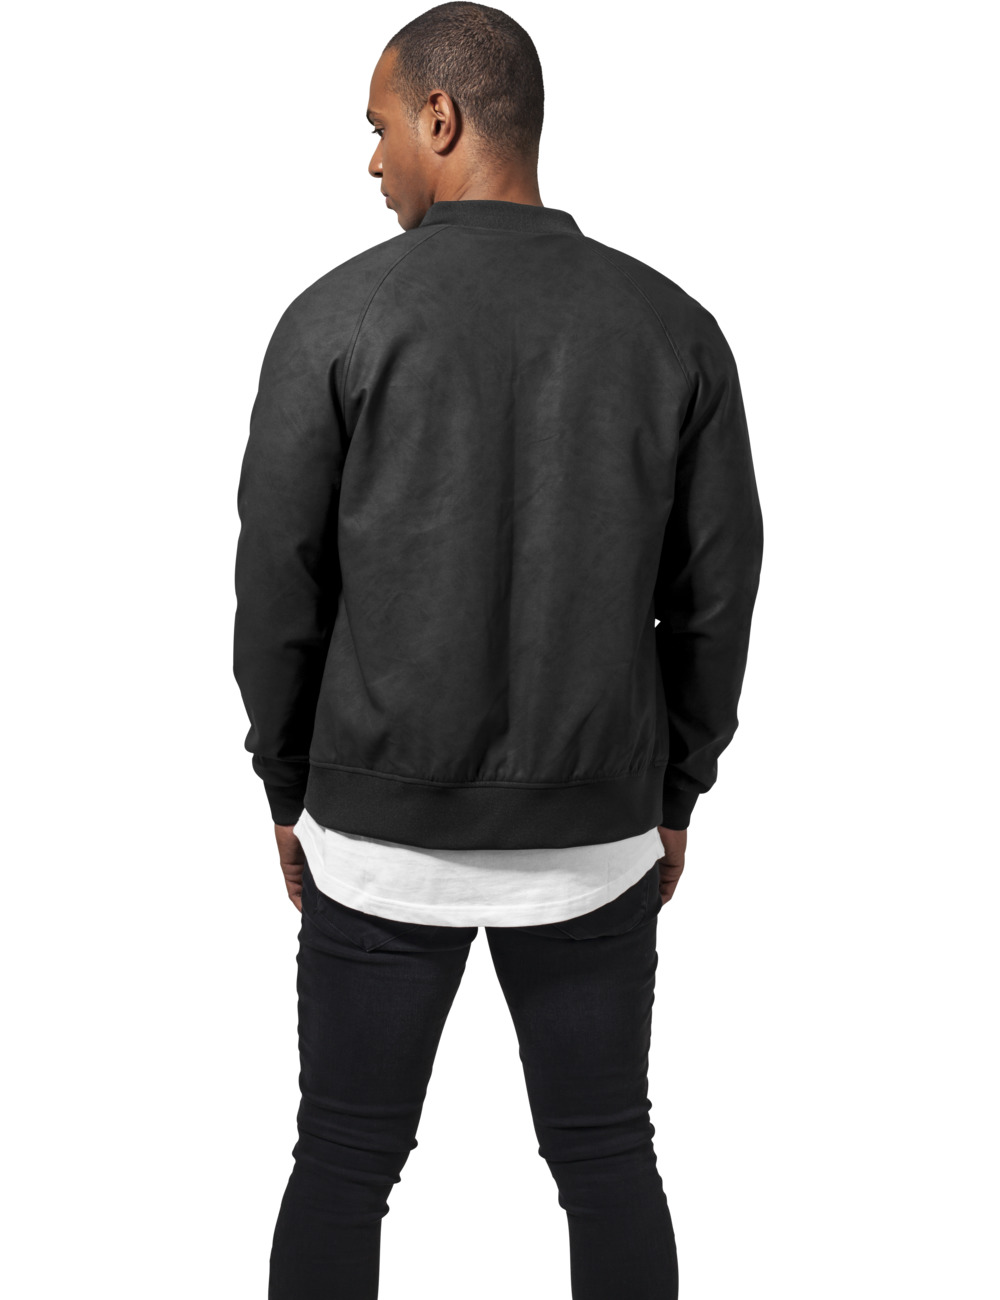 urban-classics-herren-jacke-imitation-leather-raglan-blouson